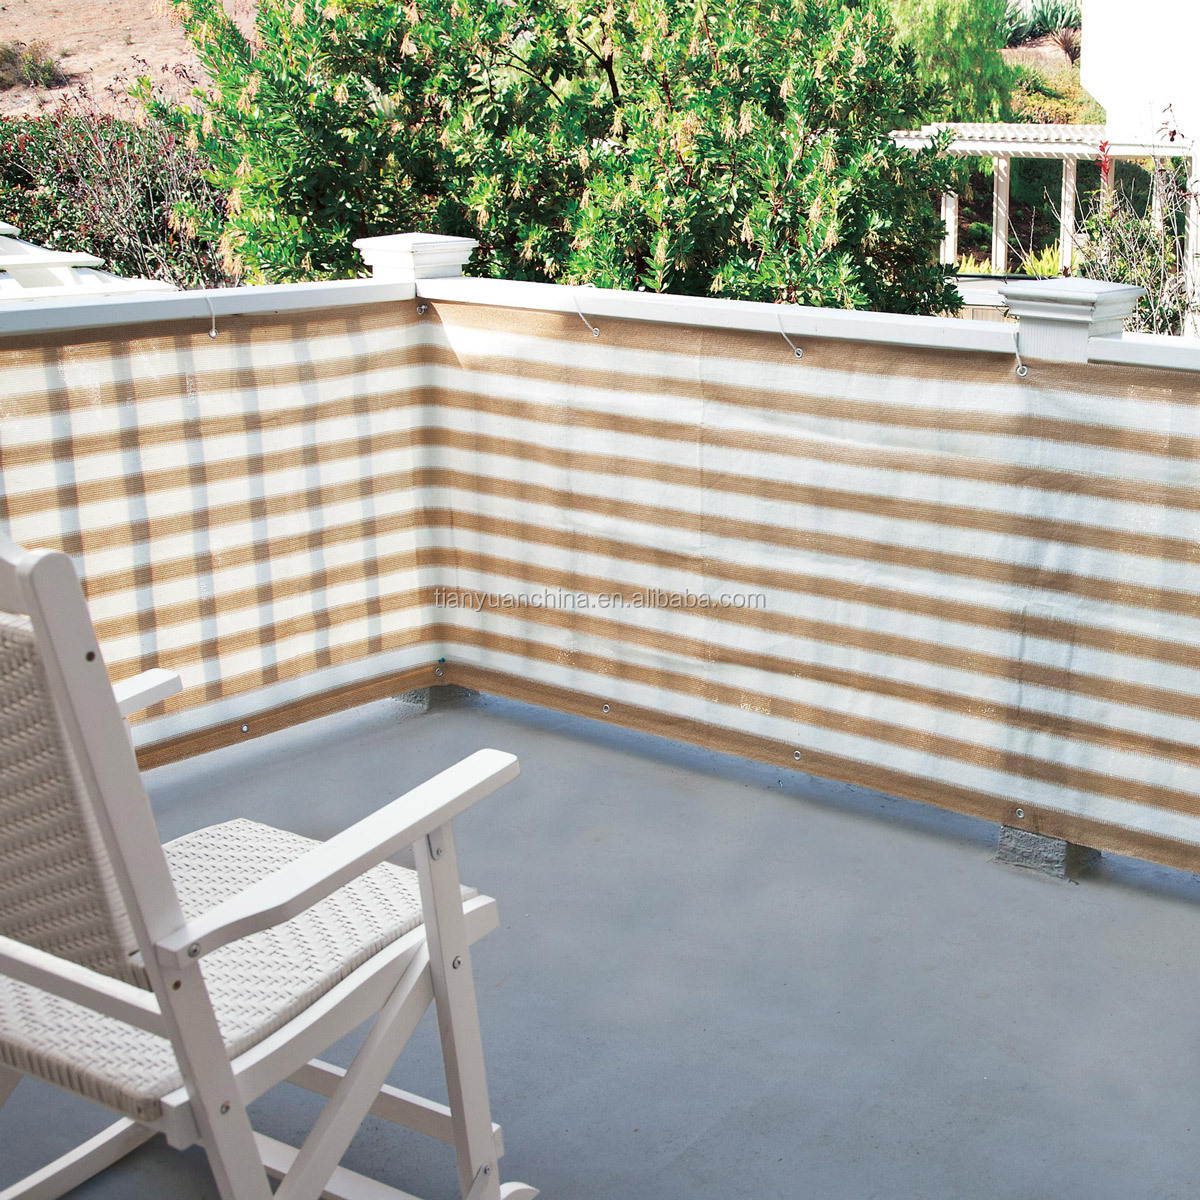 Easy to wash HDPE balcony privacy cover fence screen for protection